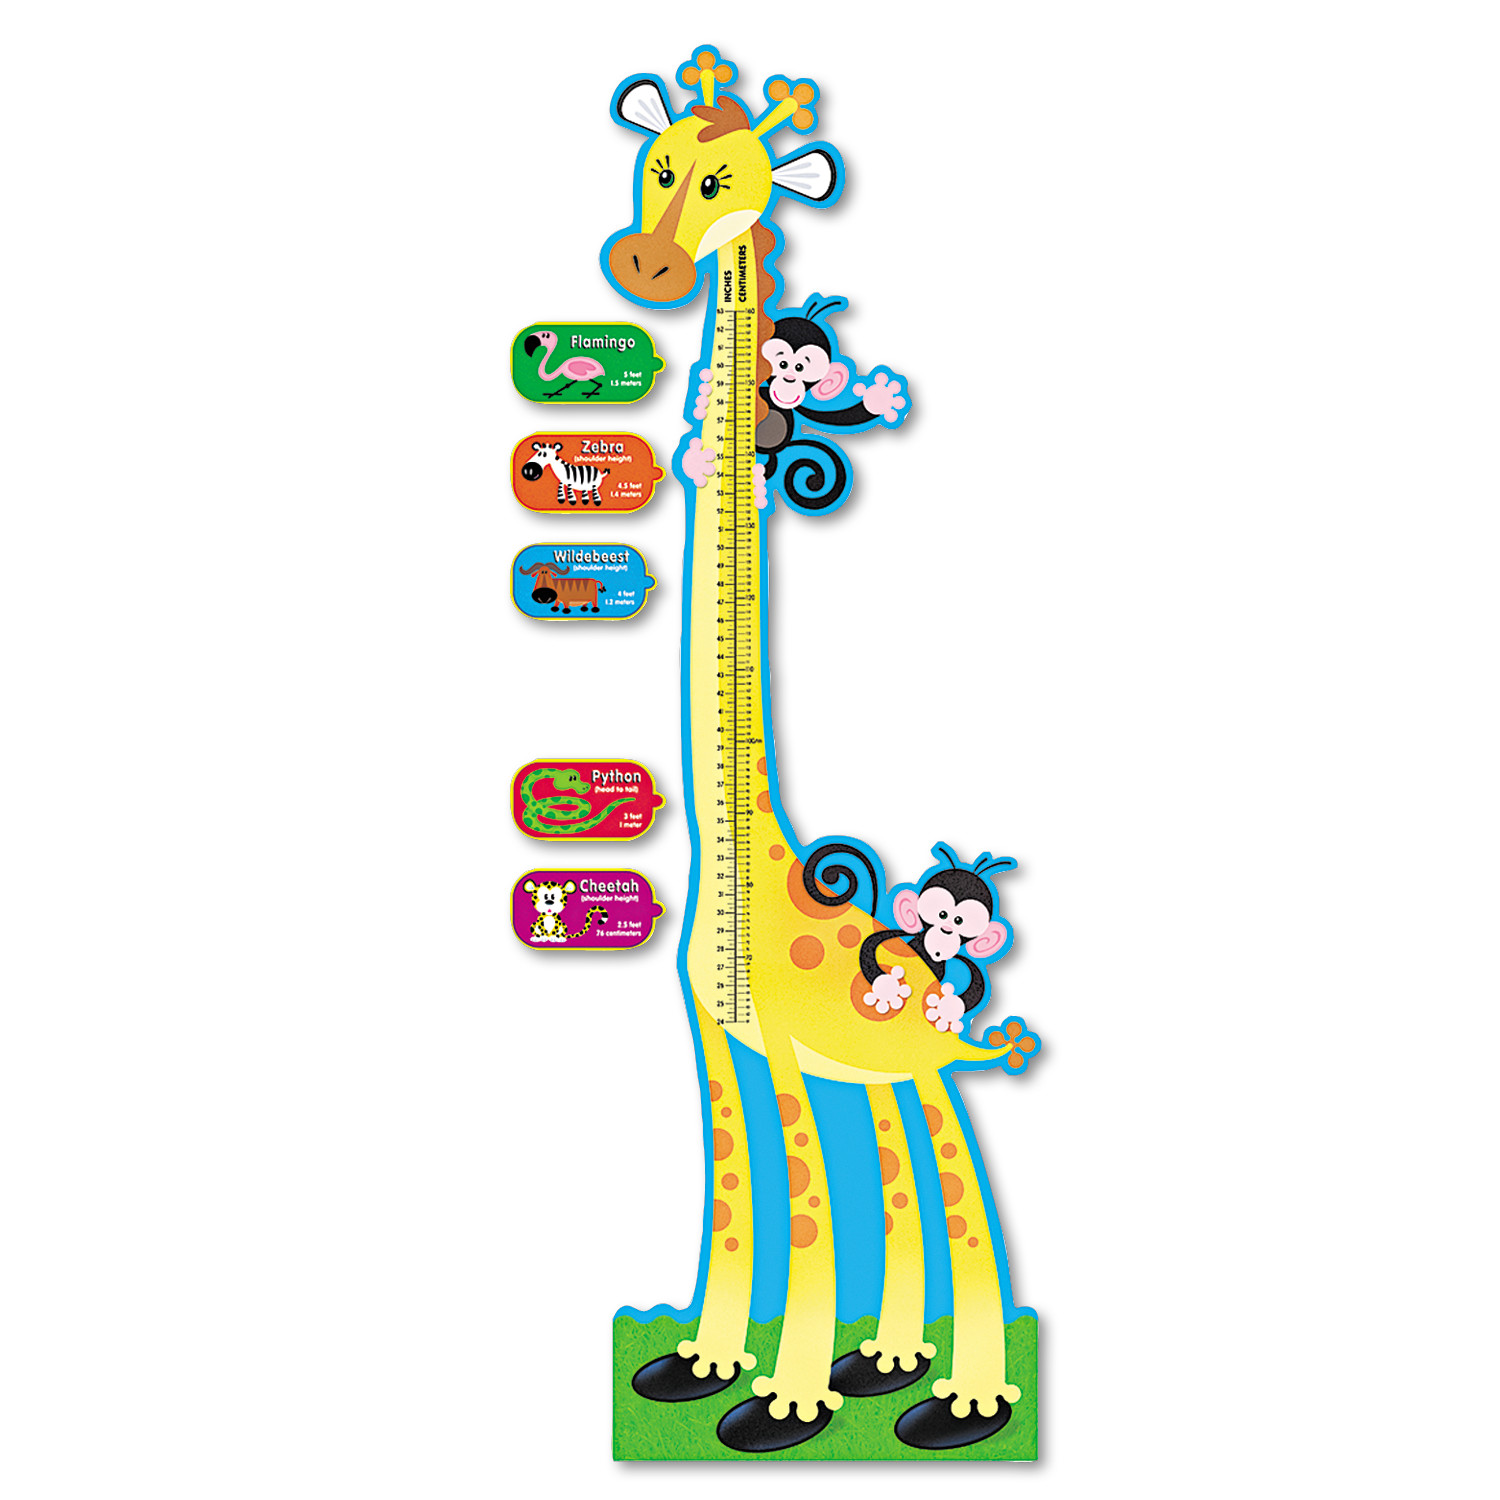 TREND Giraffe Growth Chart Bulletin Board Set, 6 ft